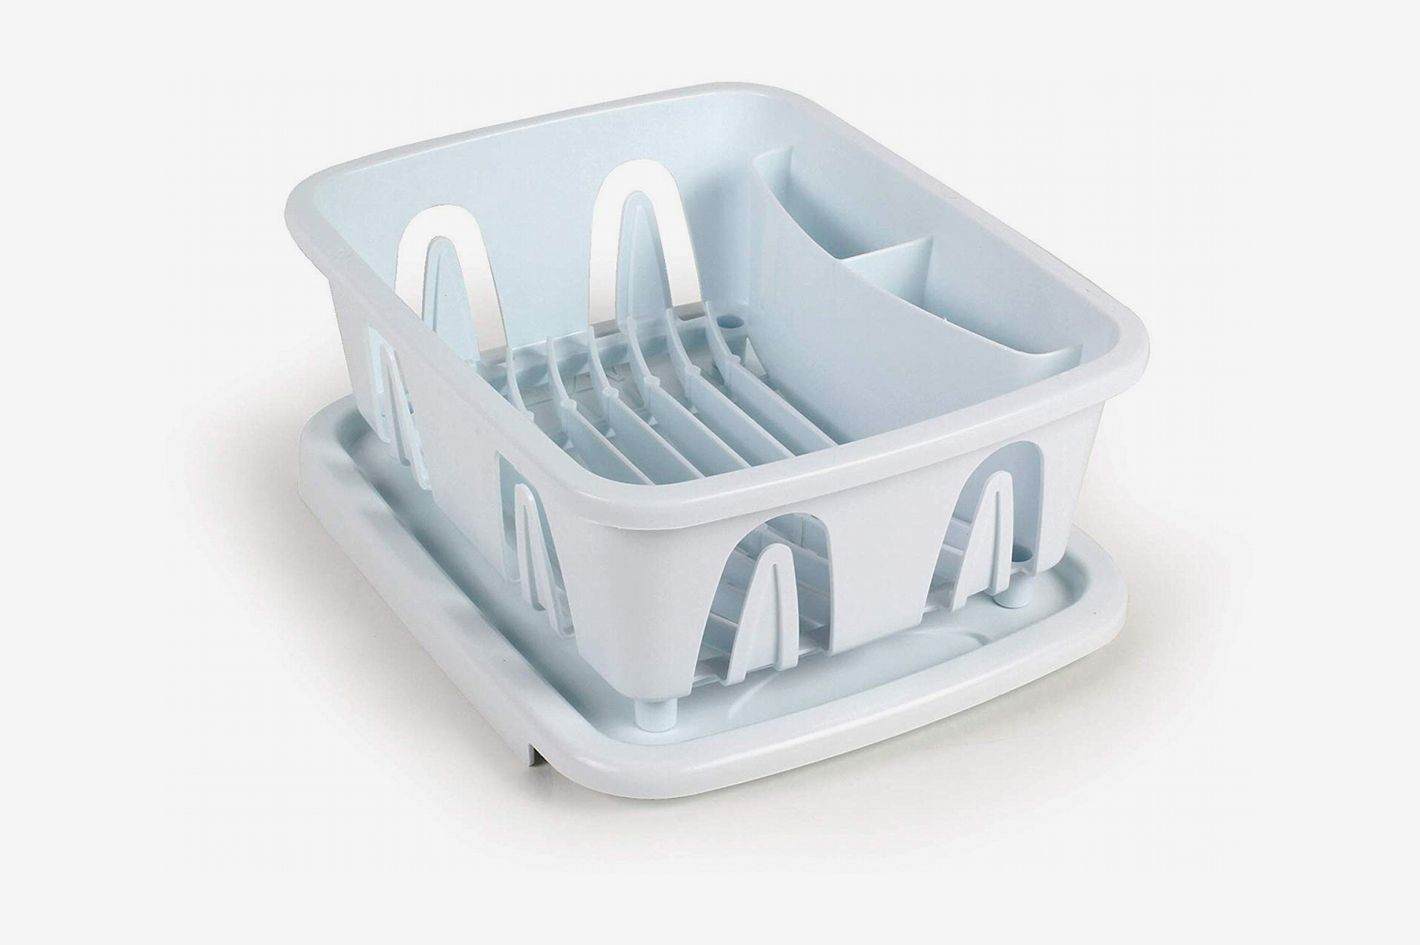 Camco Durable Mini Dish Drainer Rack and Tray